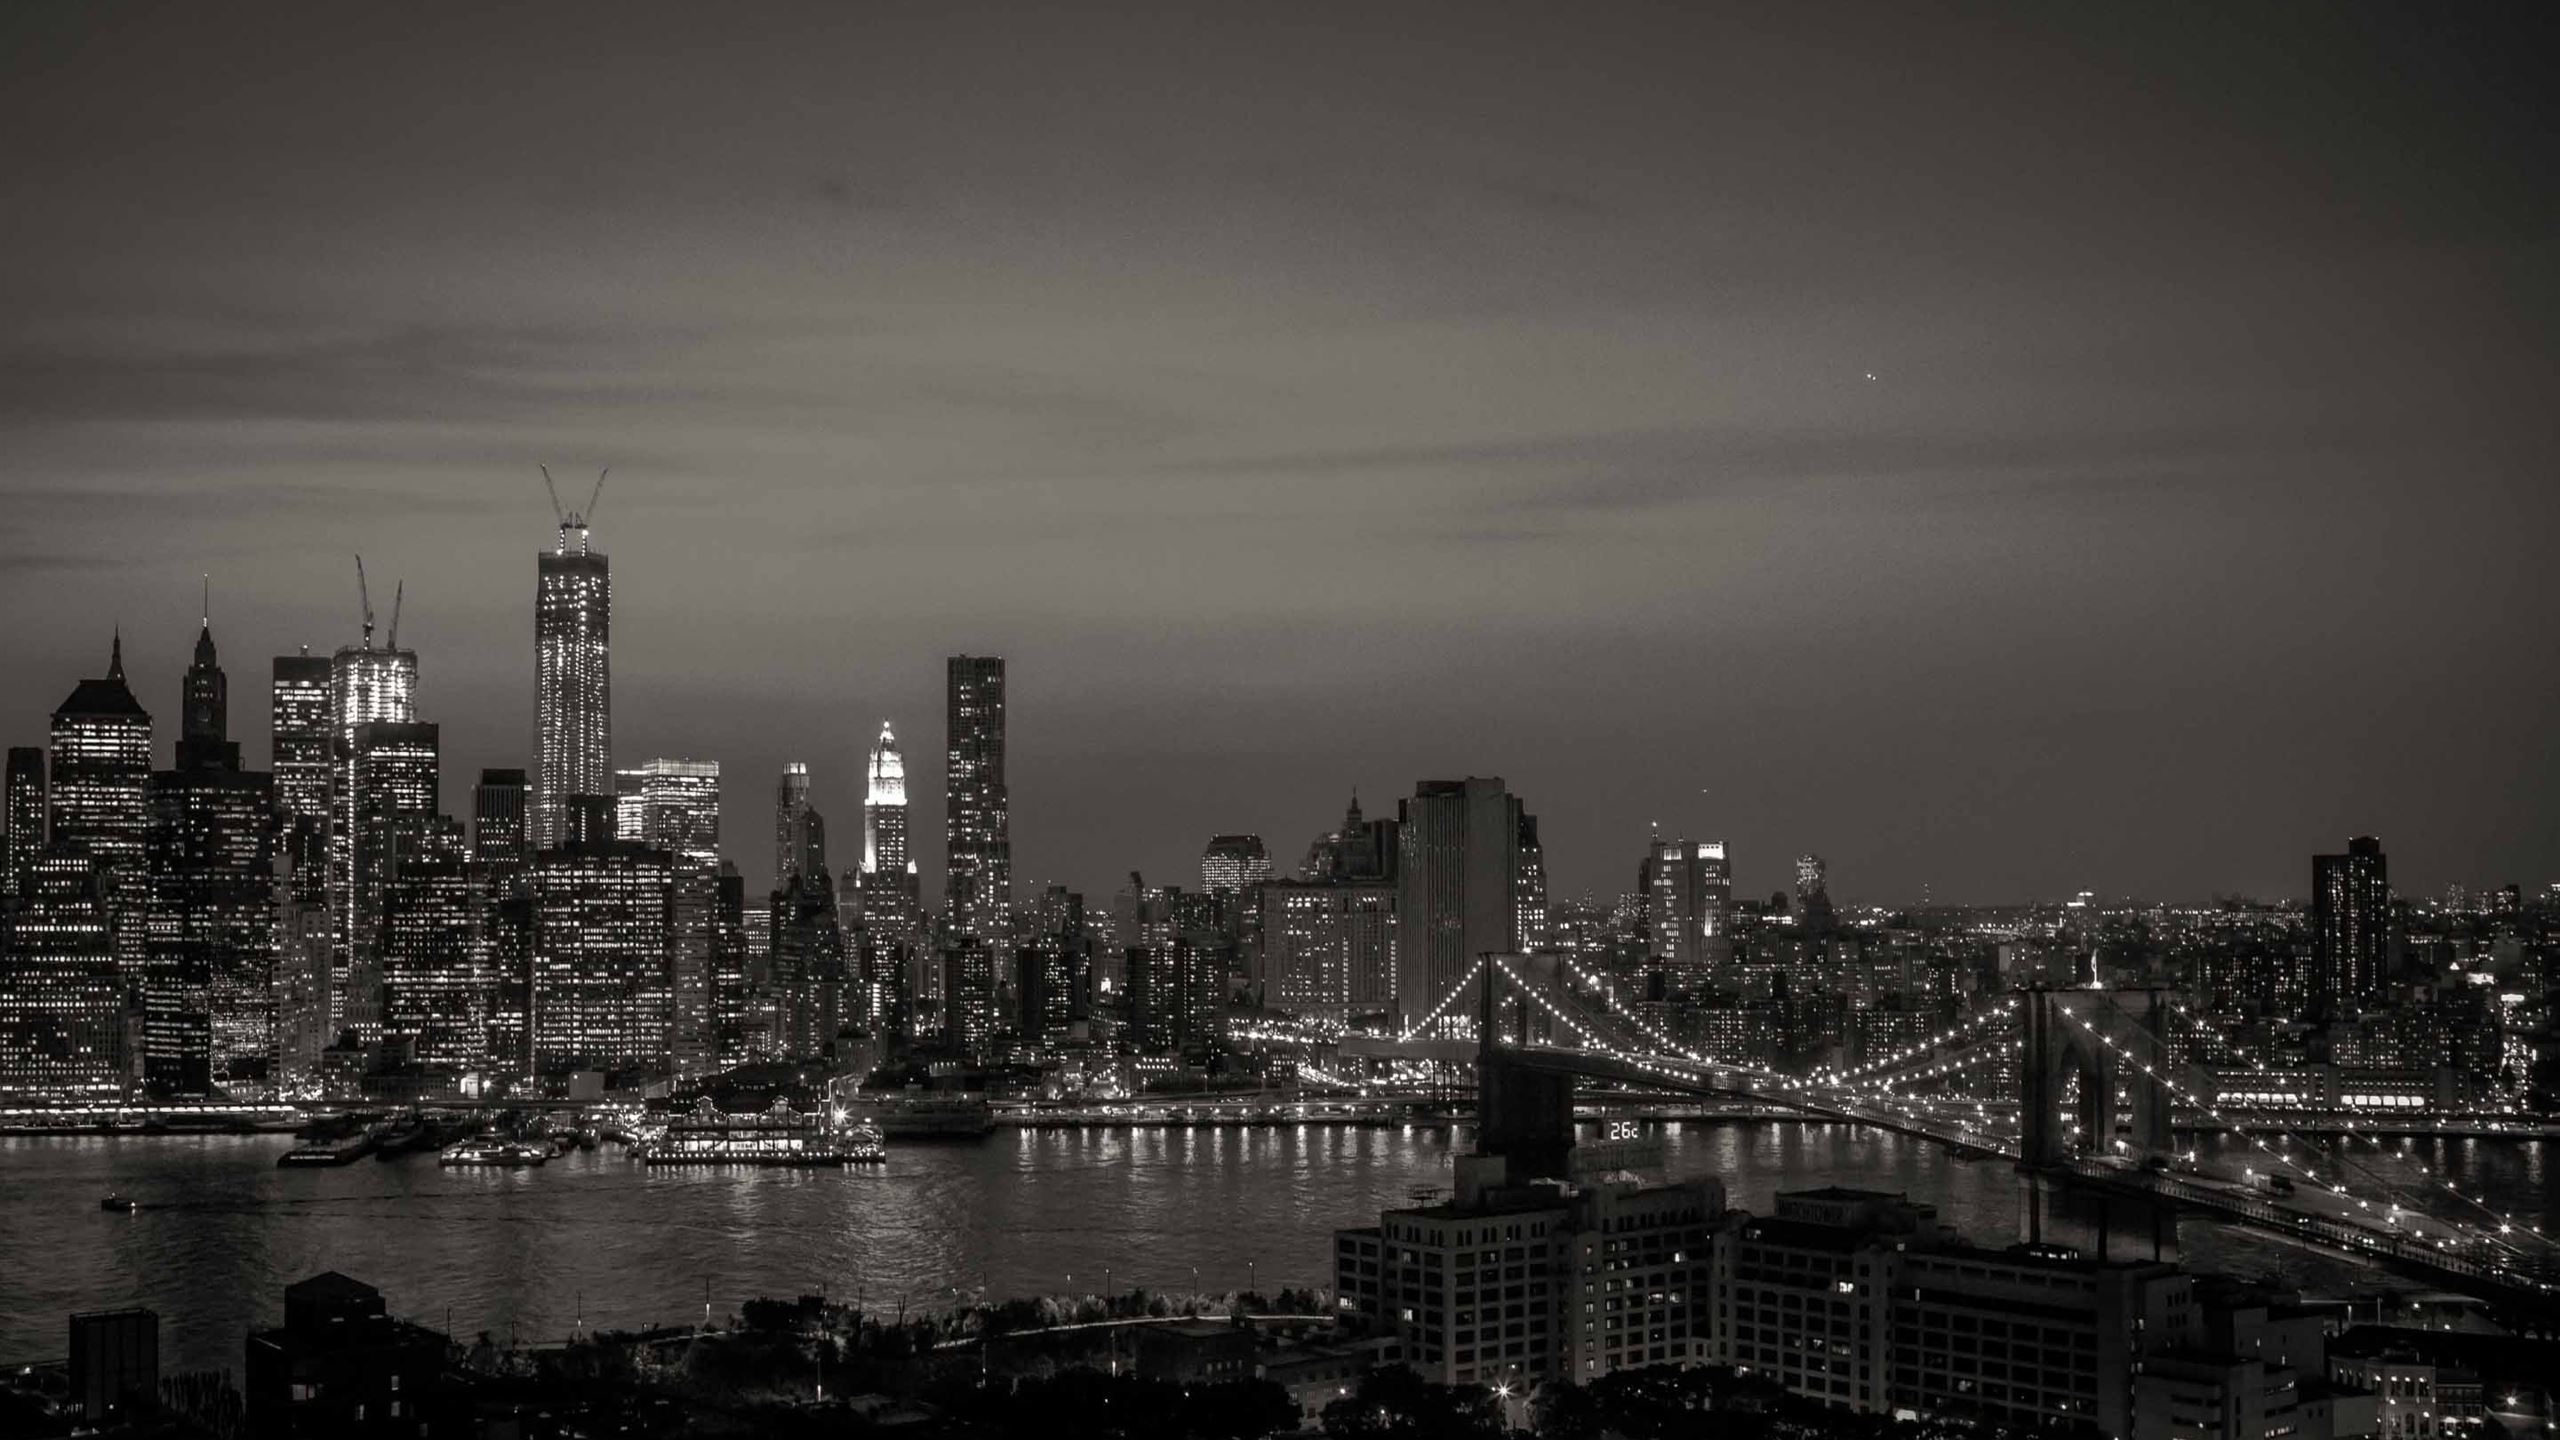 Nyc Iphone X Wallpaper New York City Black And White Mac Wallpaper Download